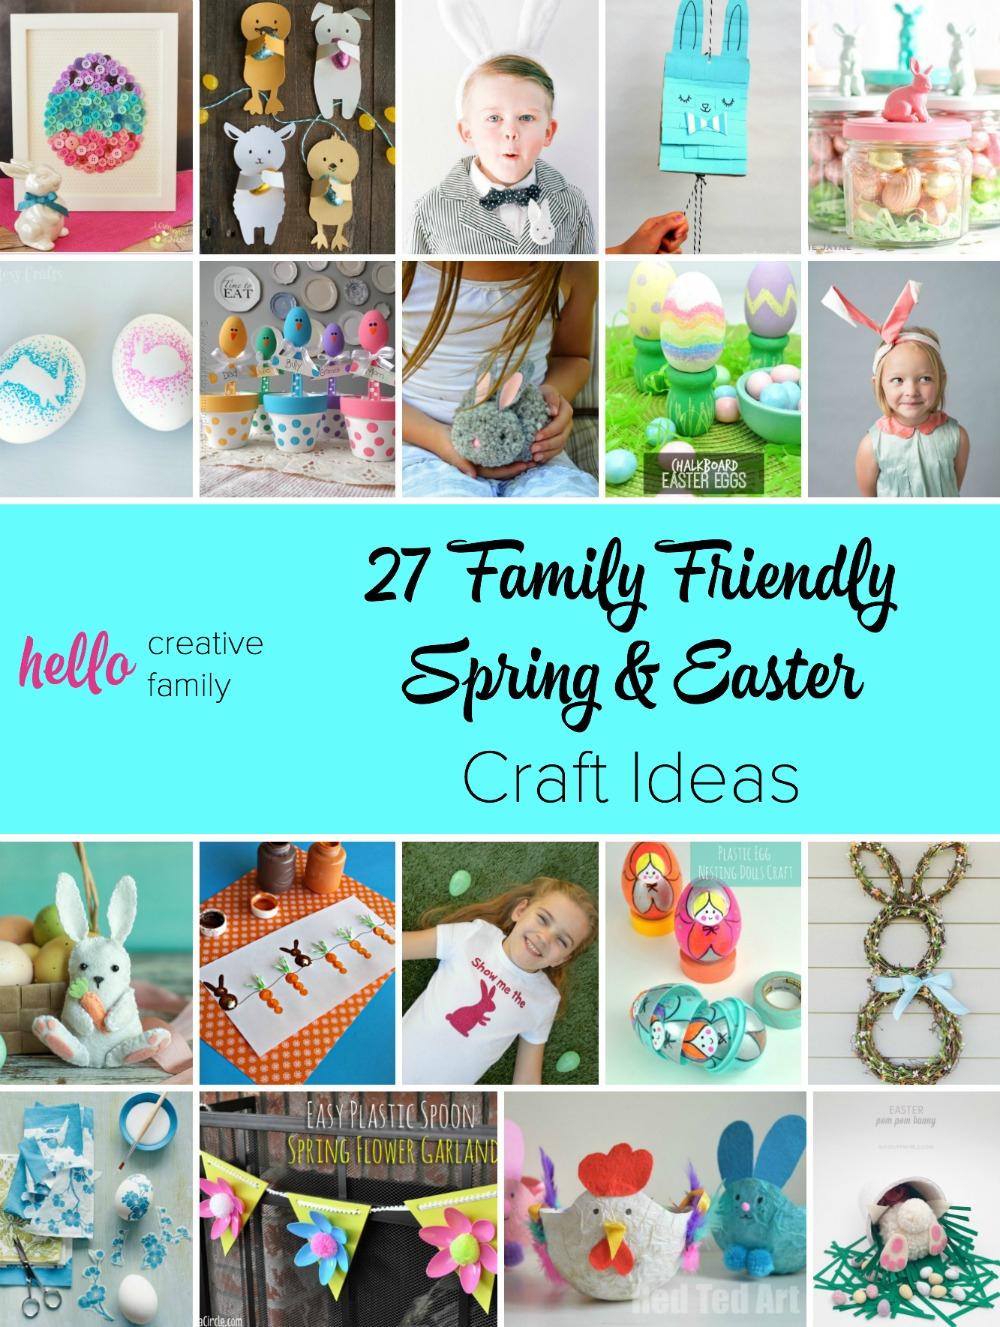 So many adorable spring and Easter craft ideas here! I love that they are family friendly and that the kids can help with these Easter crafts! My kiddo would love number 26!